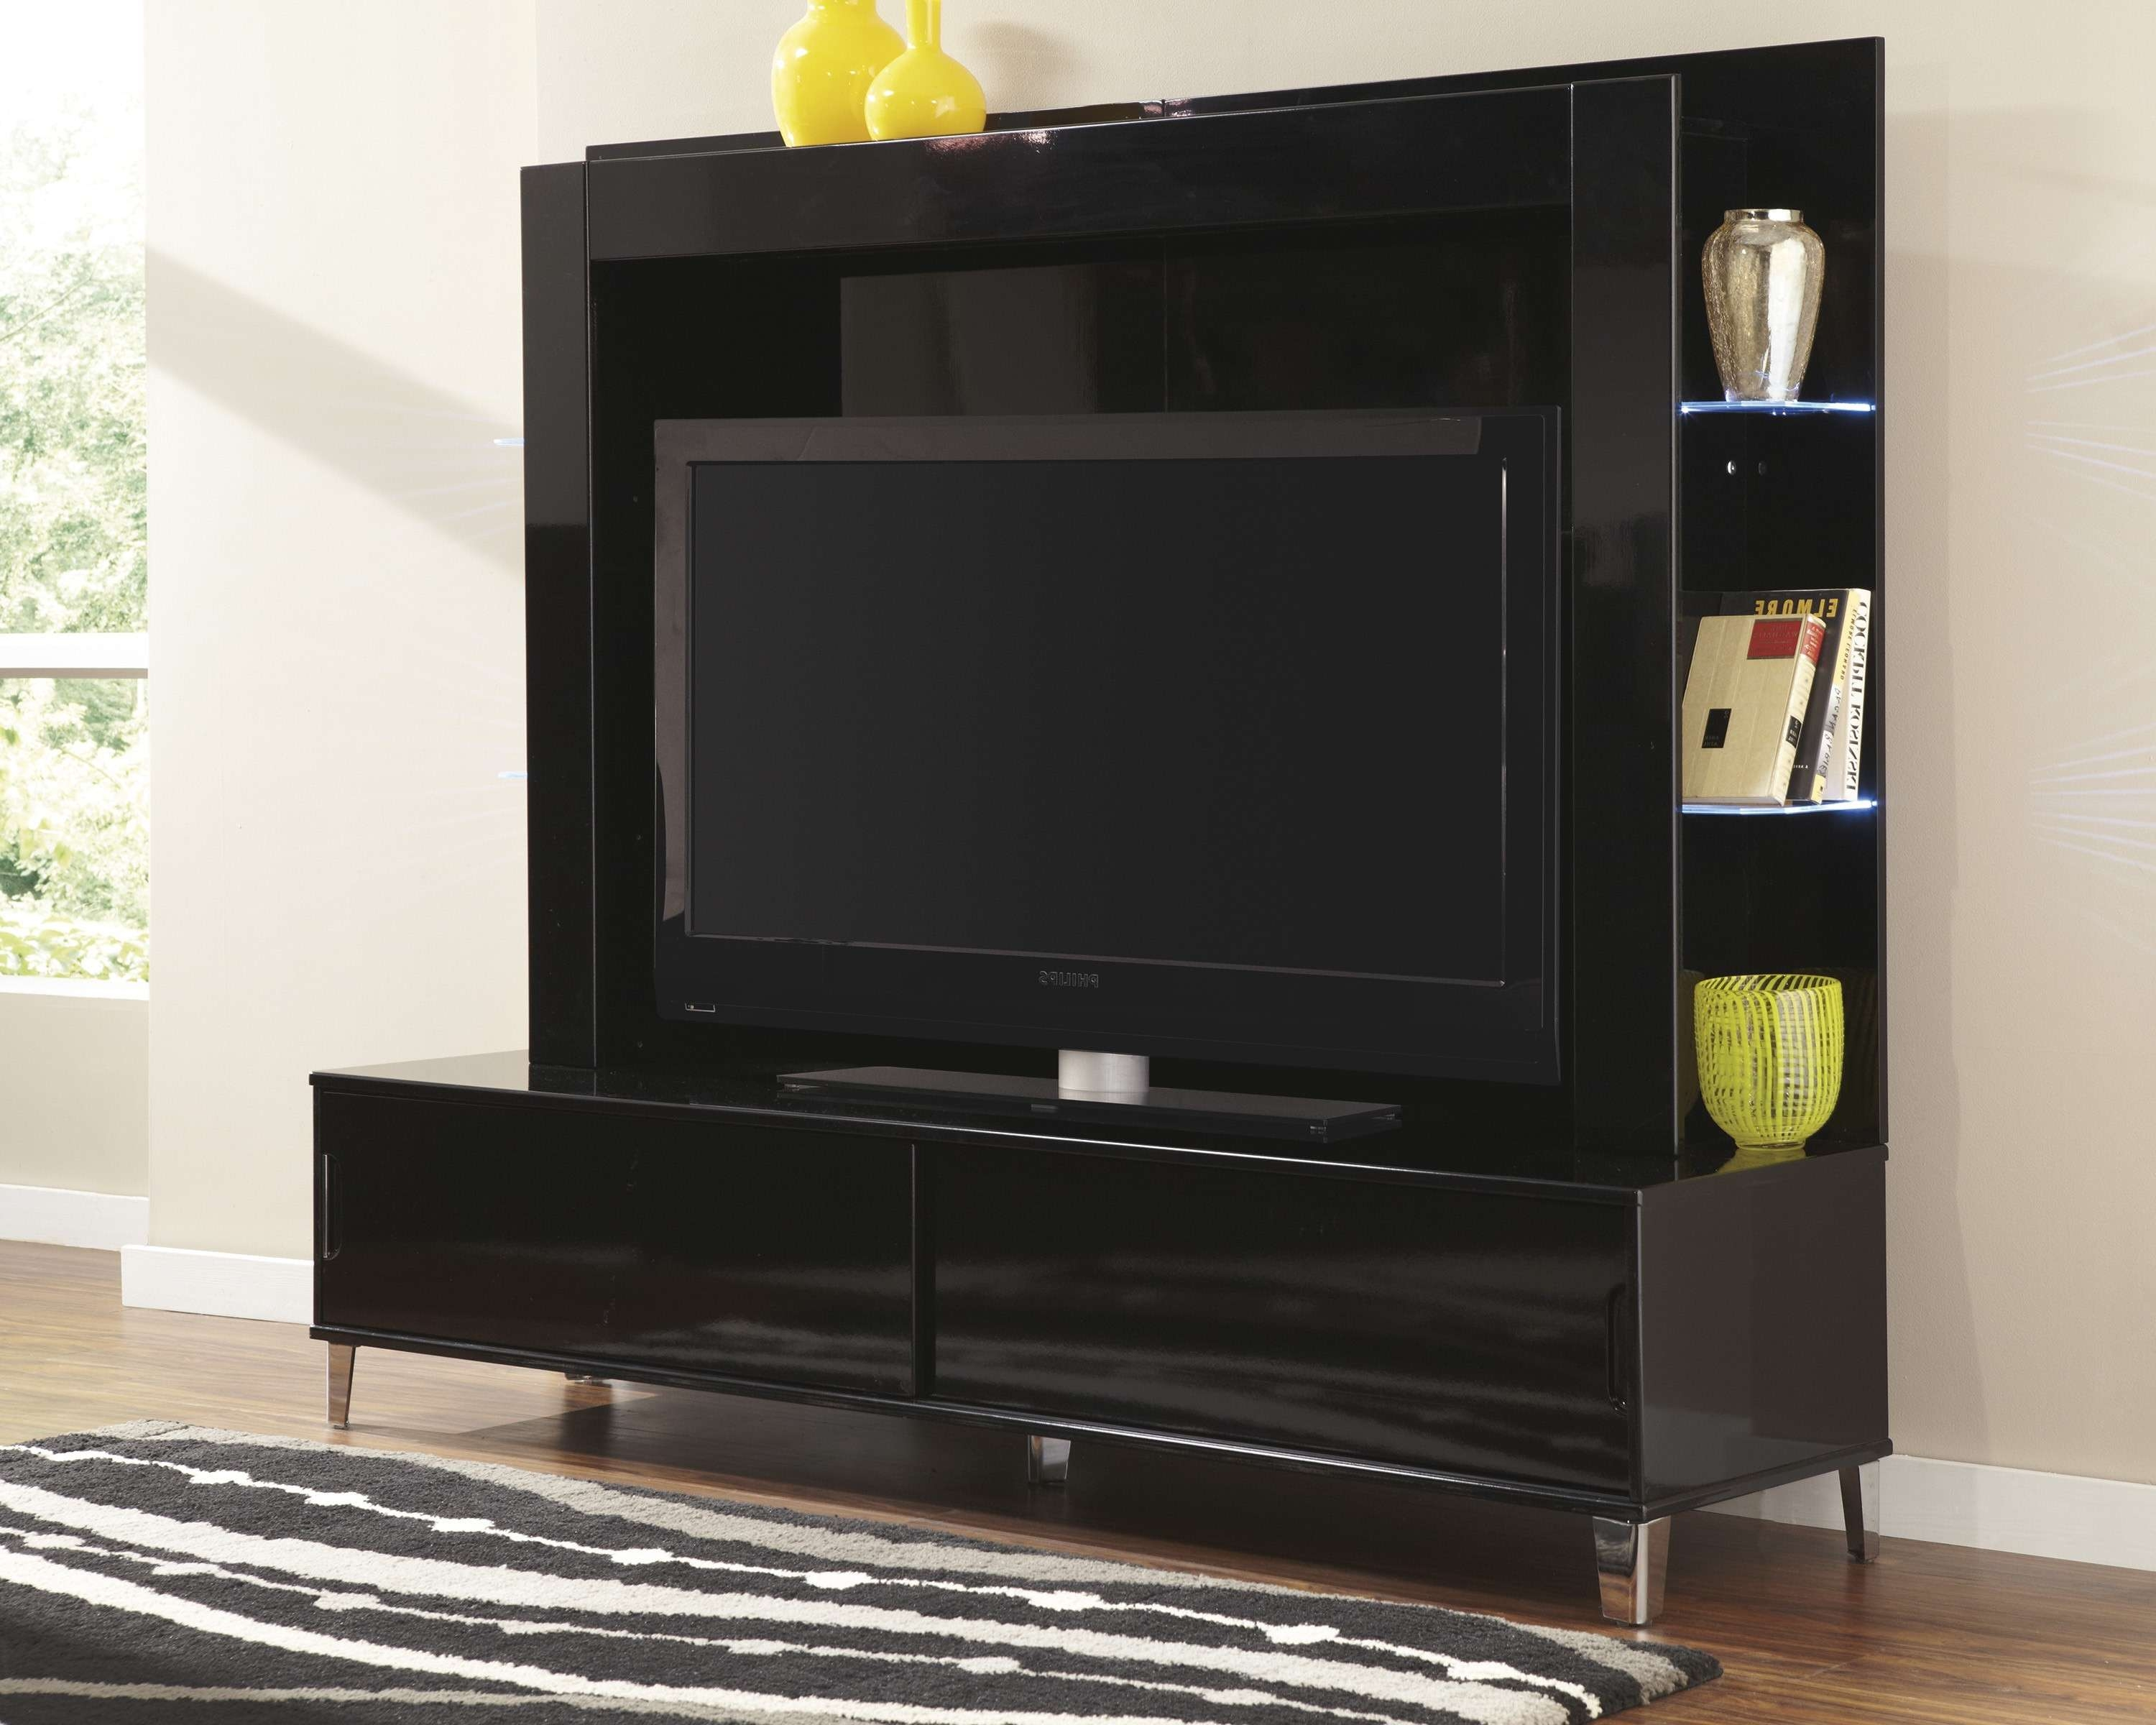 Double Bowl Carpet In Flat Screens Screen Tv Mount Stand Cream With Corner Tv Cabinets For Flat Screens With Doors (View 18 of 20)